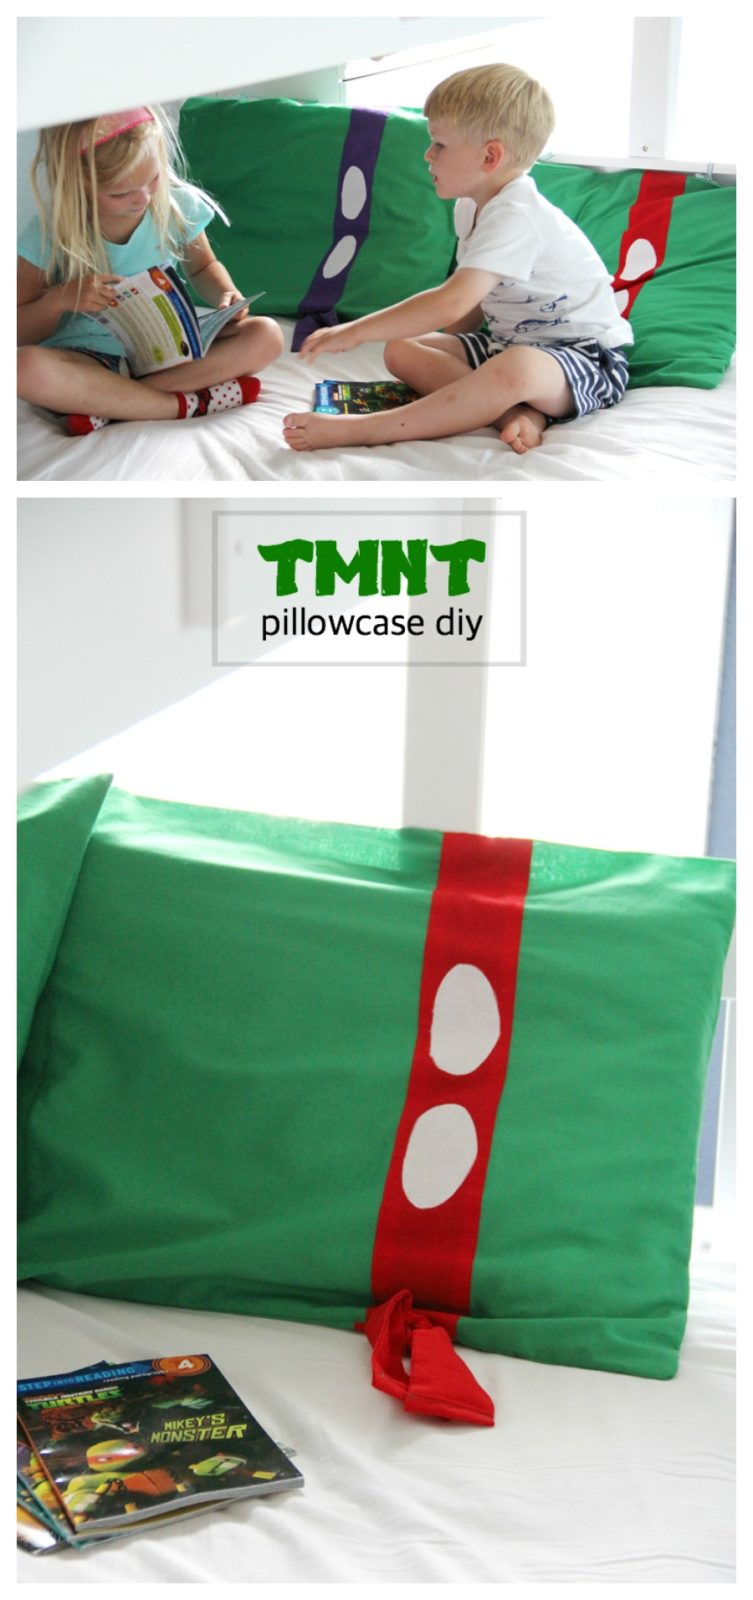 TMNT pillowcases